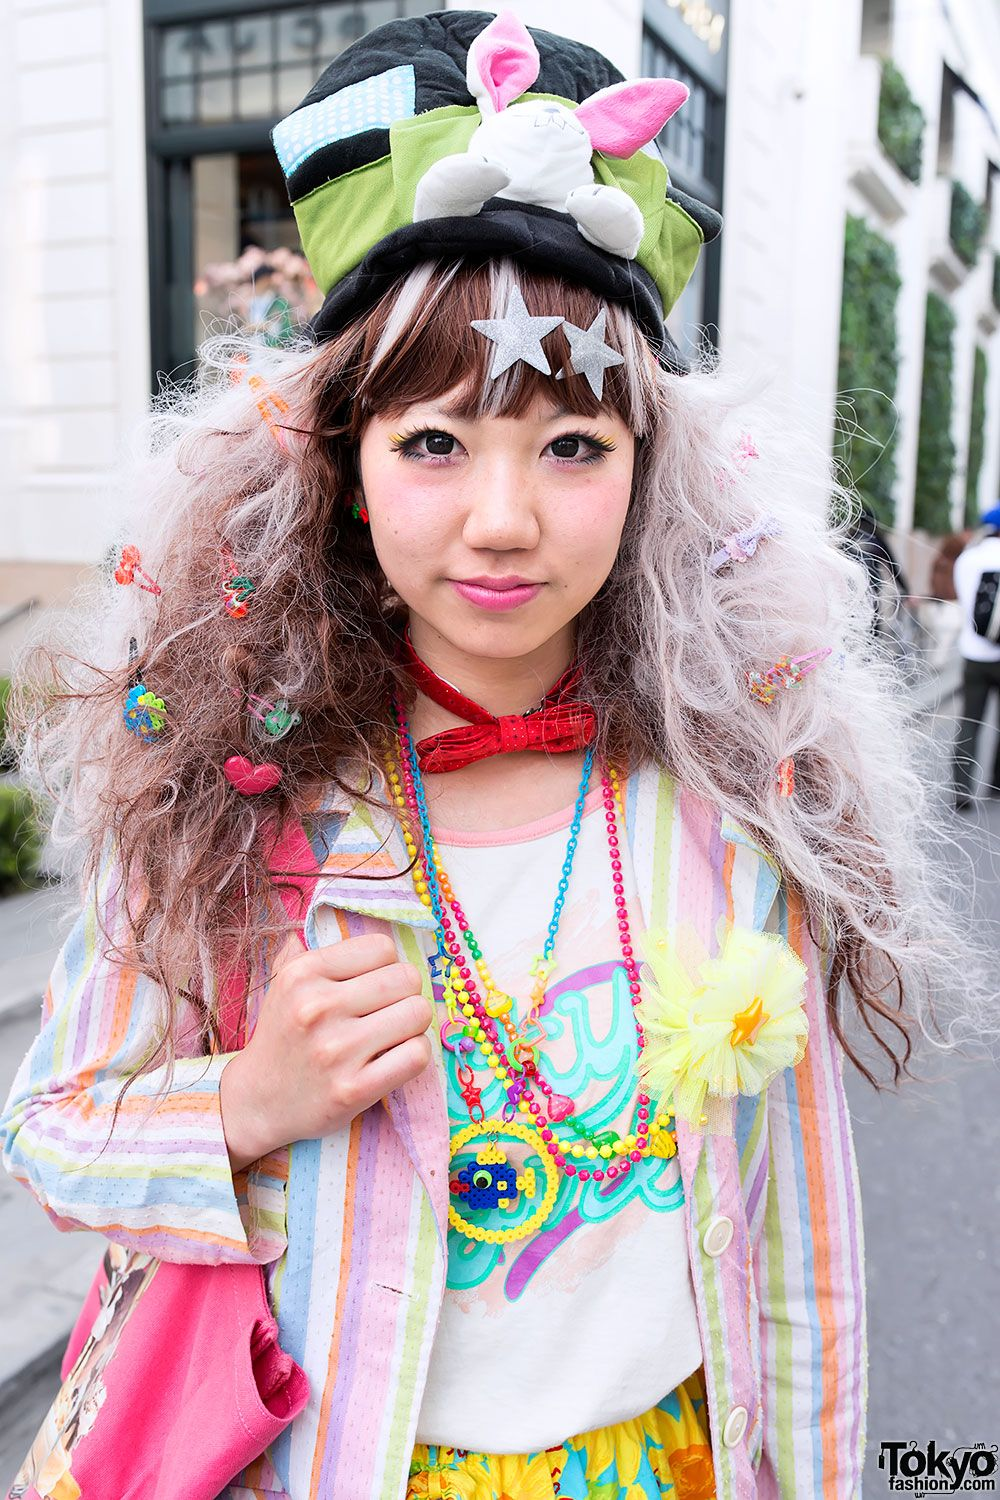 harajuku style hair hadeko fashion amp hair in harajuku decora 5854